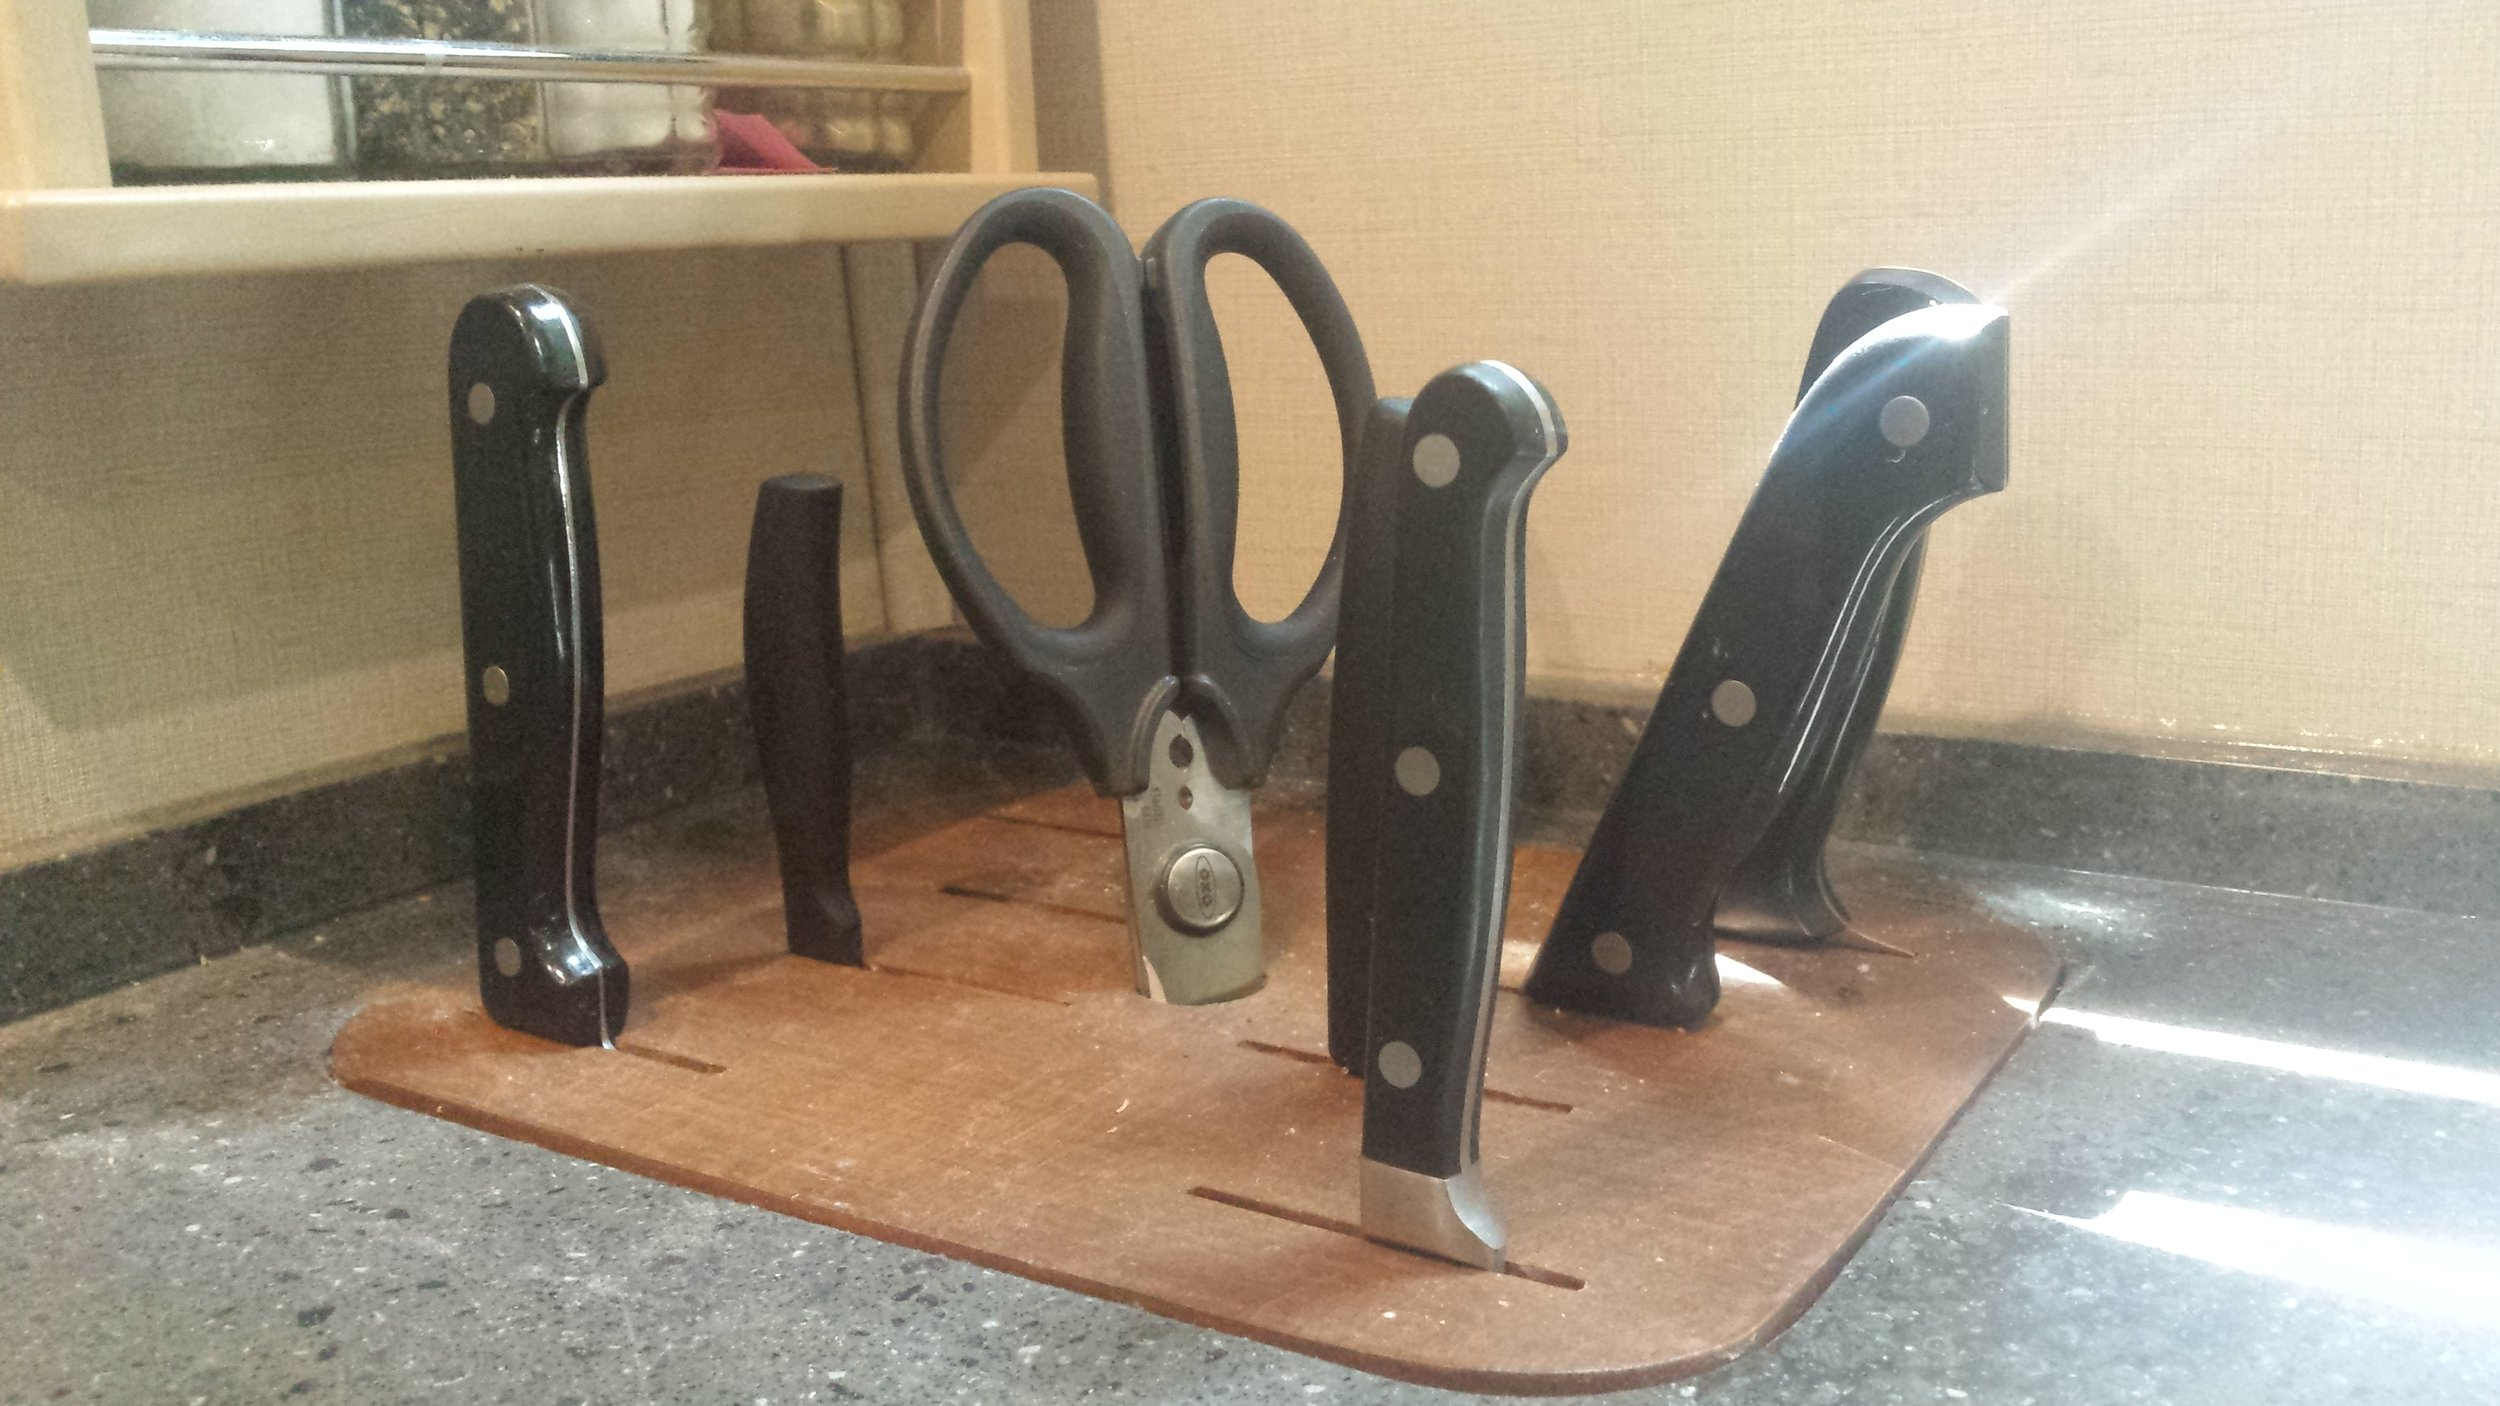 A knife block insert for the RV kitchen counter